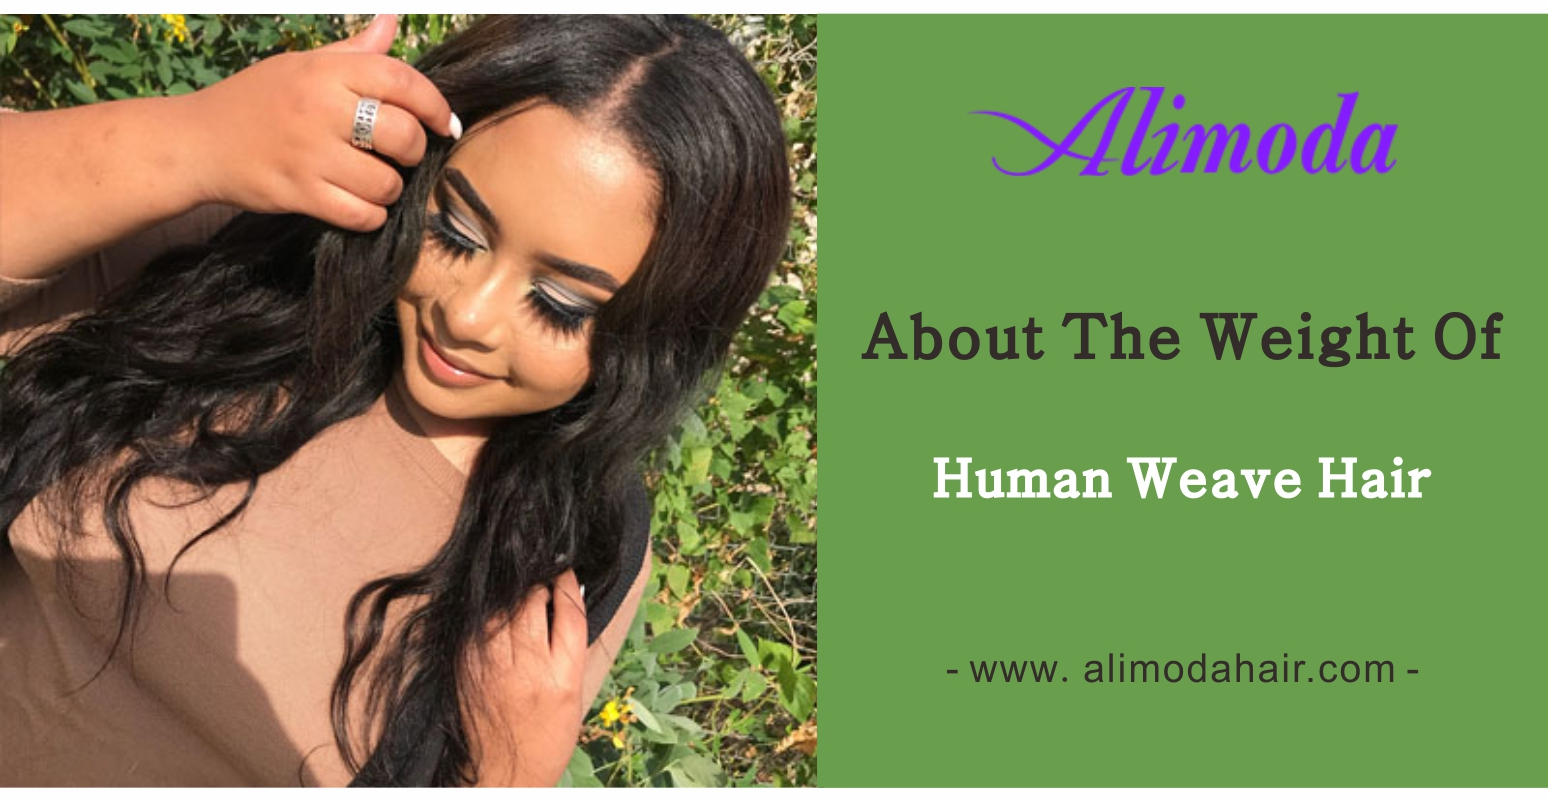 About the weight of human weave hair?